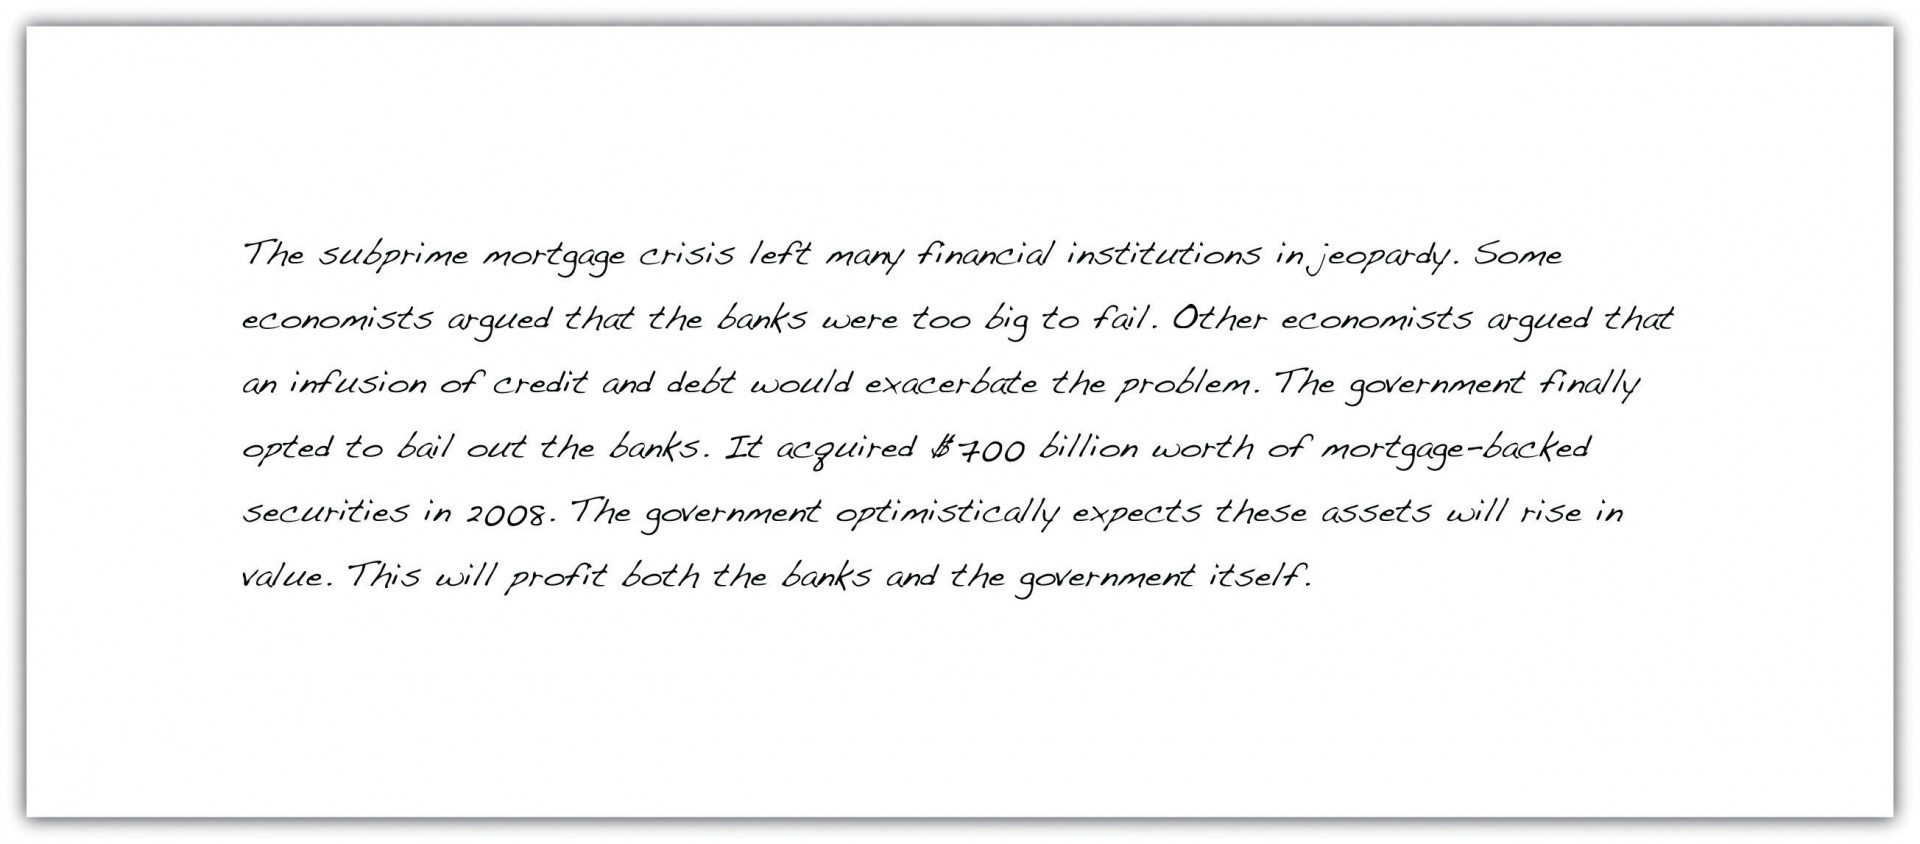 015 Essay Example How Many Sentencesre In Best Sentences Are A Much Make Paragraph An 250 Word 1920